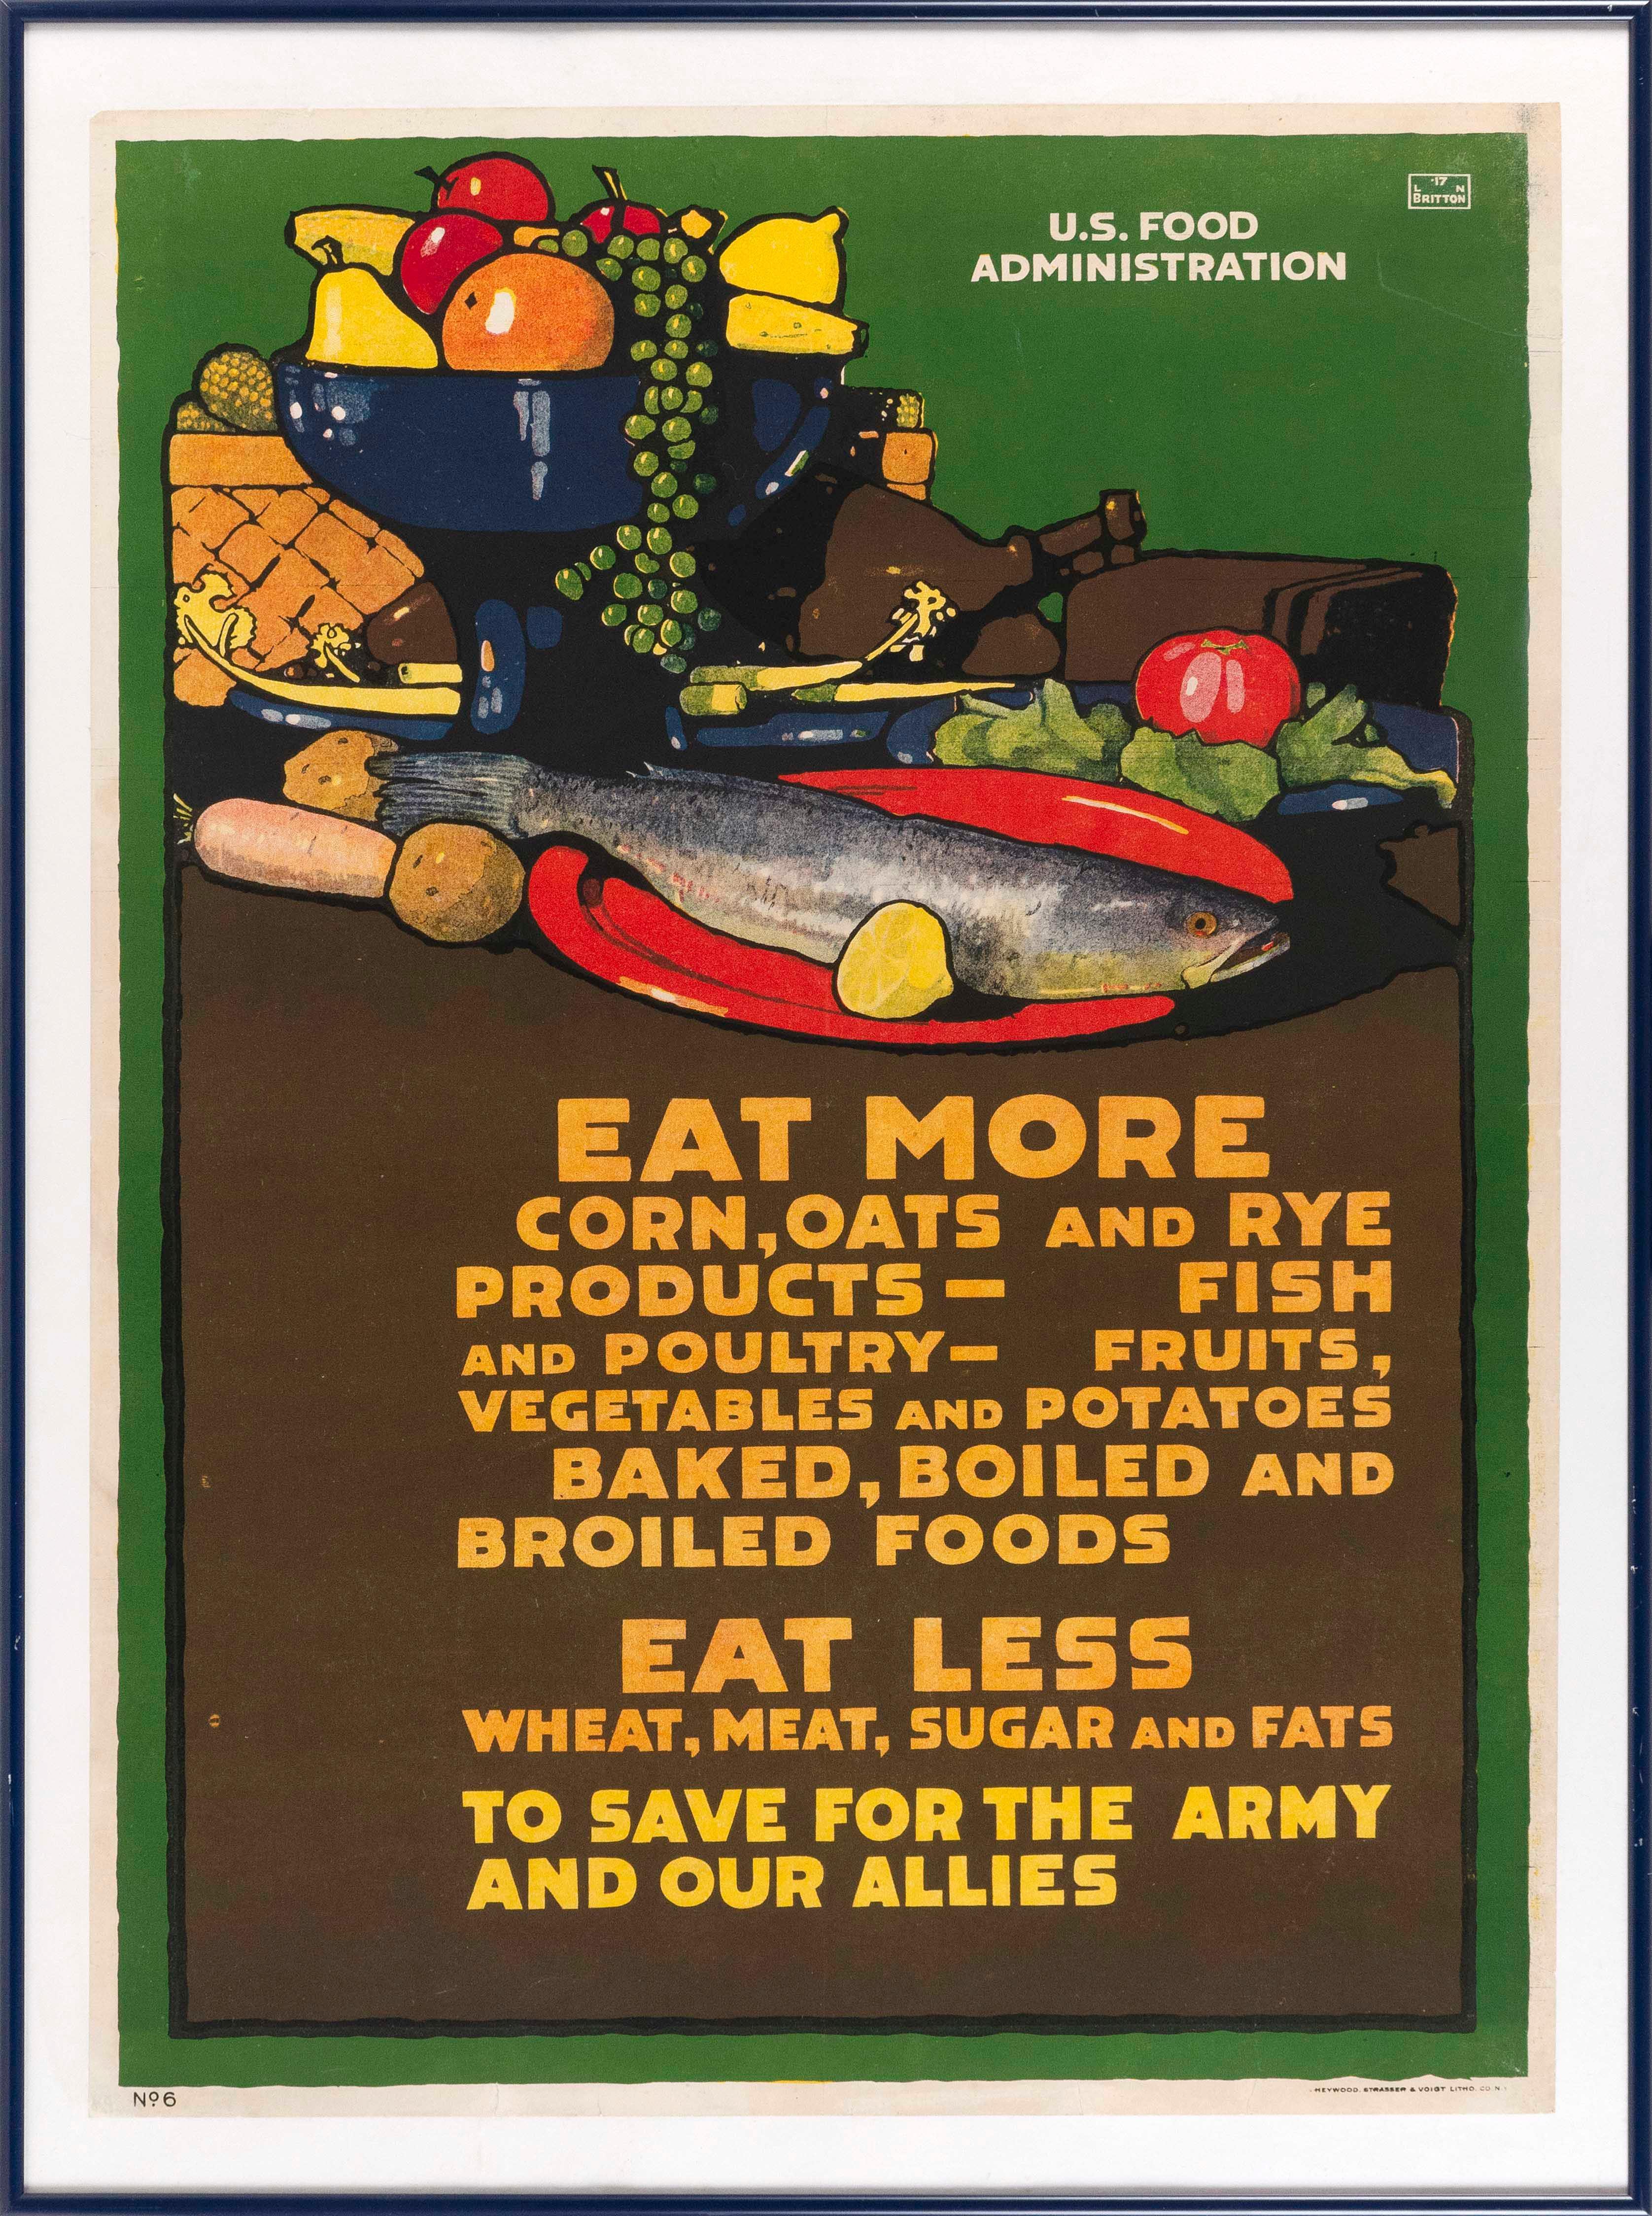 """""""EAT MORE CORN, OATS AND RYE ... EAT LESS WHEAT, MEAT ... TO SAVE FOR THE ARMY AND OUR ALLIES"""" WORLD WAR I POSTER By L.N. Britton fo..."""